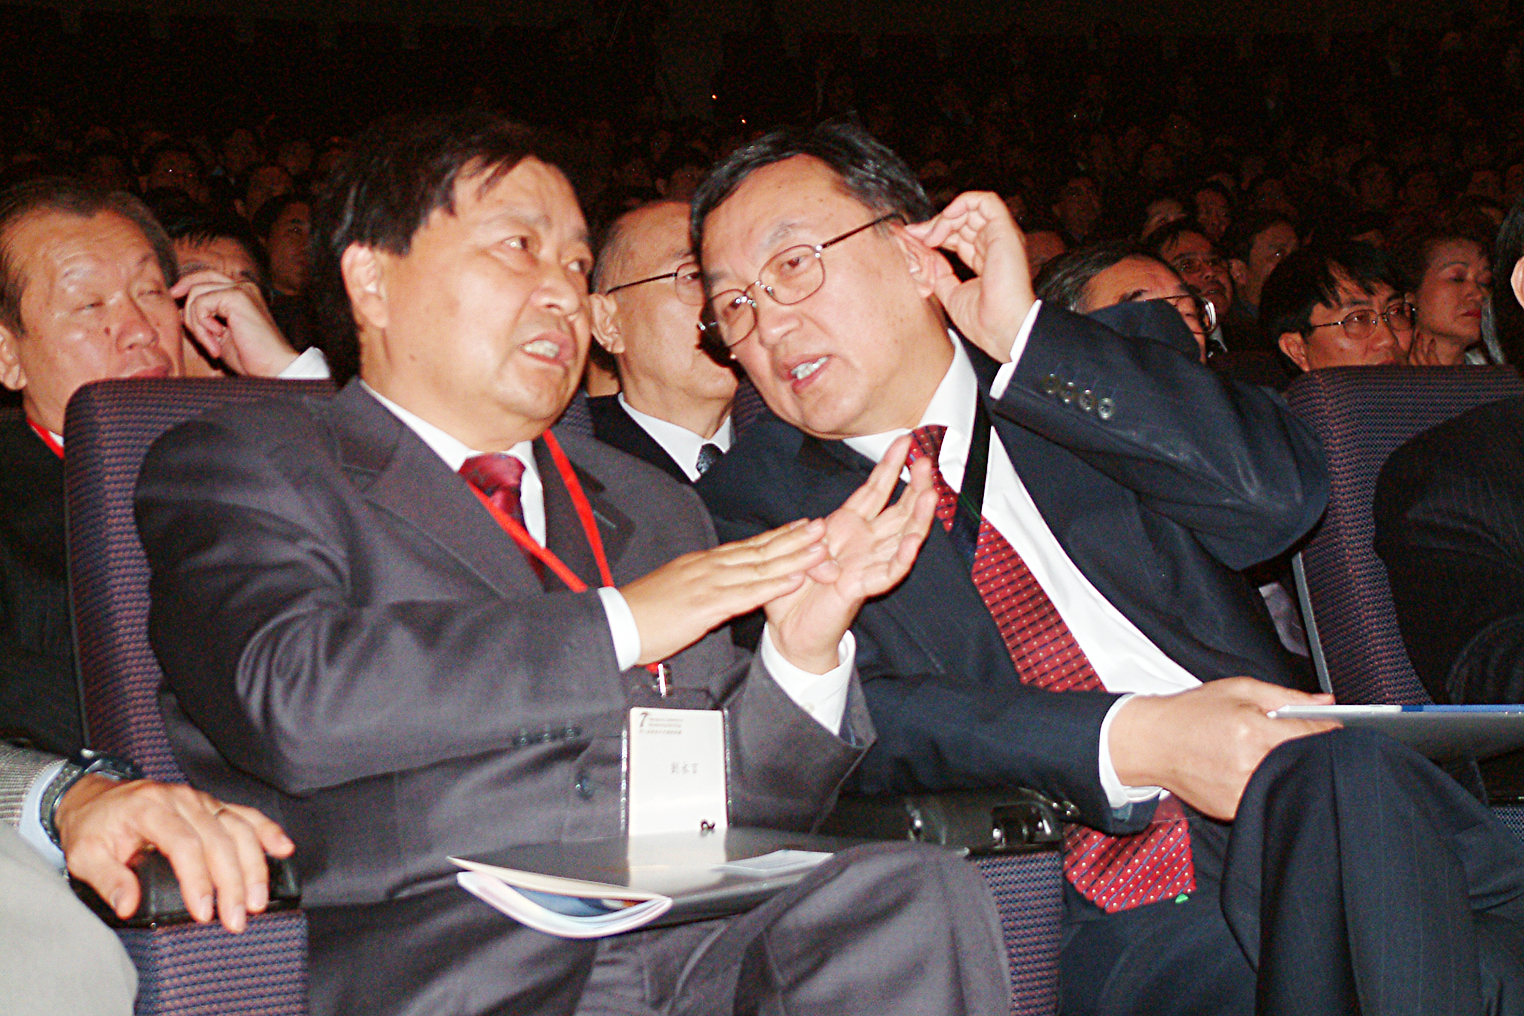 The Chairman and Mr. Chuanzhe Liu